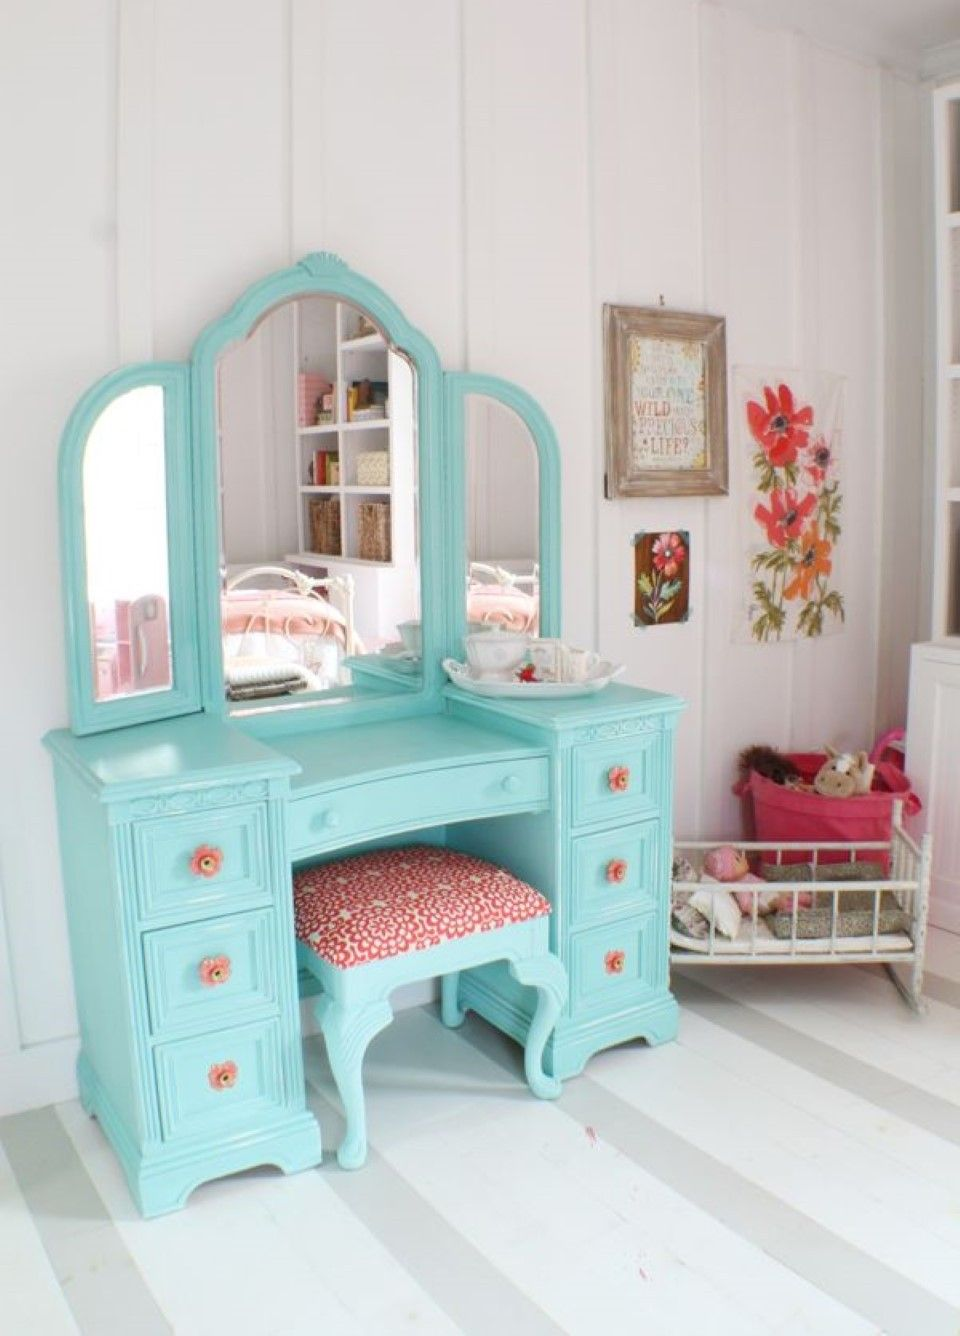 47 Adorable Interior Decorating Ideas For Girls Bedroom | All In One Guide  | Page 6